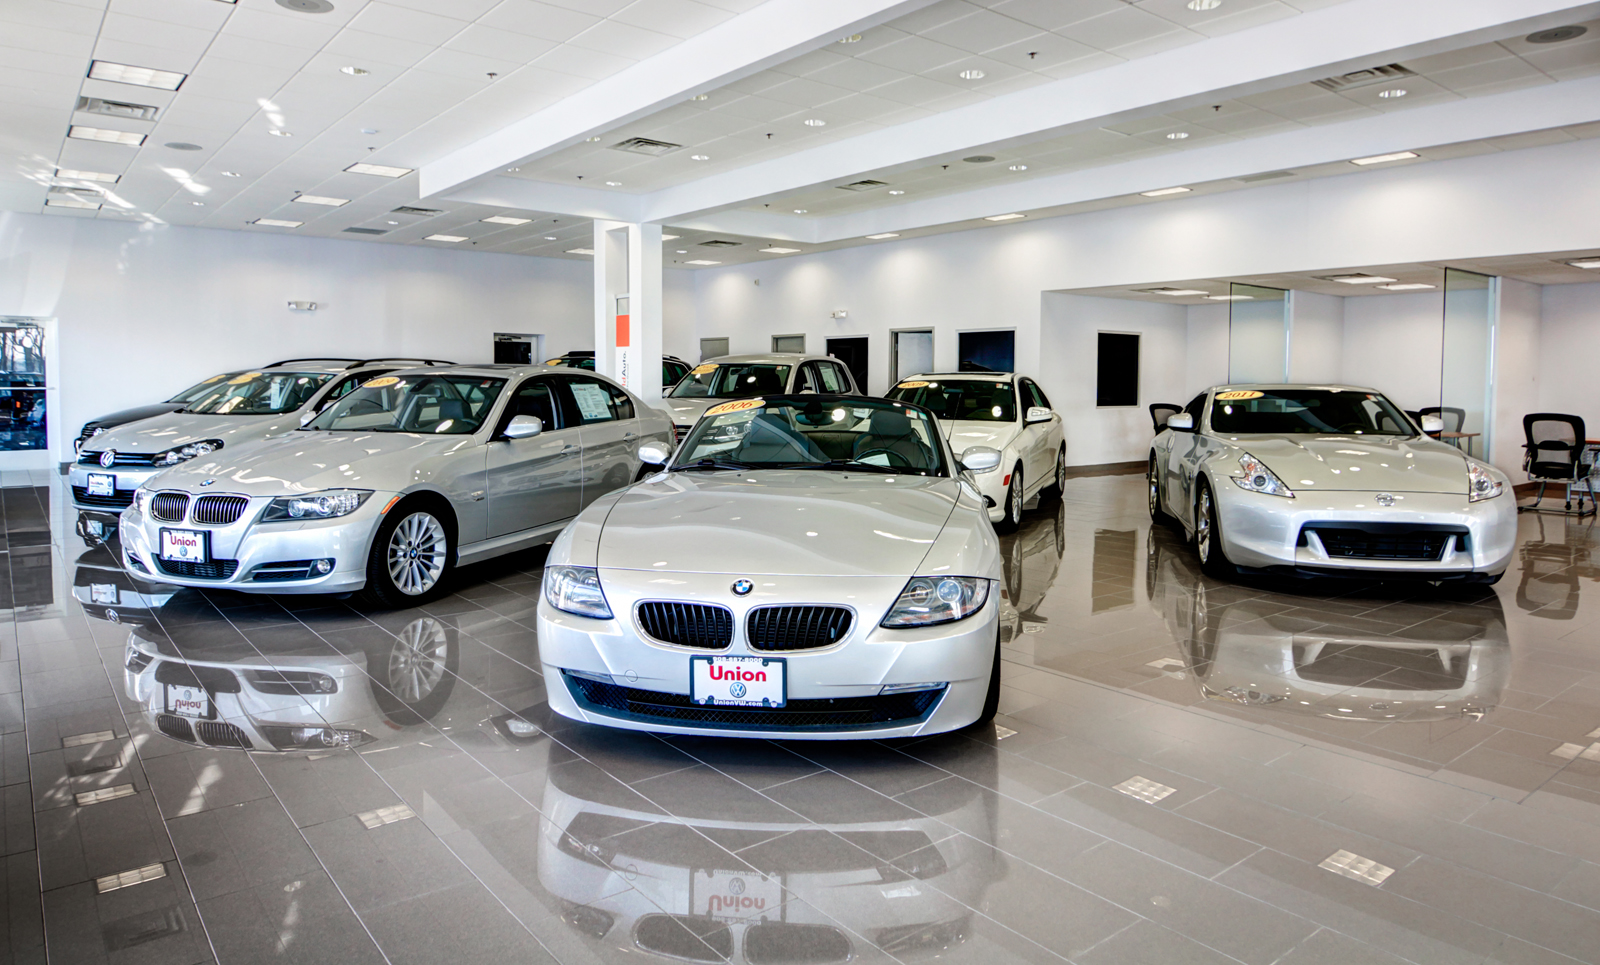 Union Volkswagen New Jersey Google Business View Nj